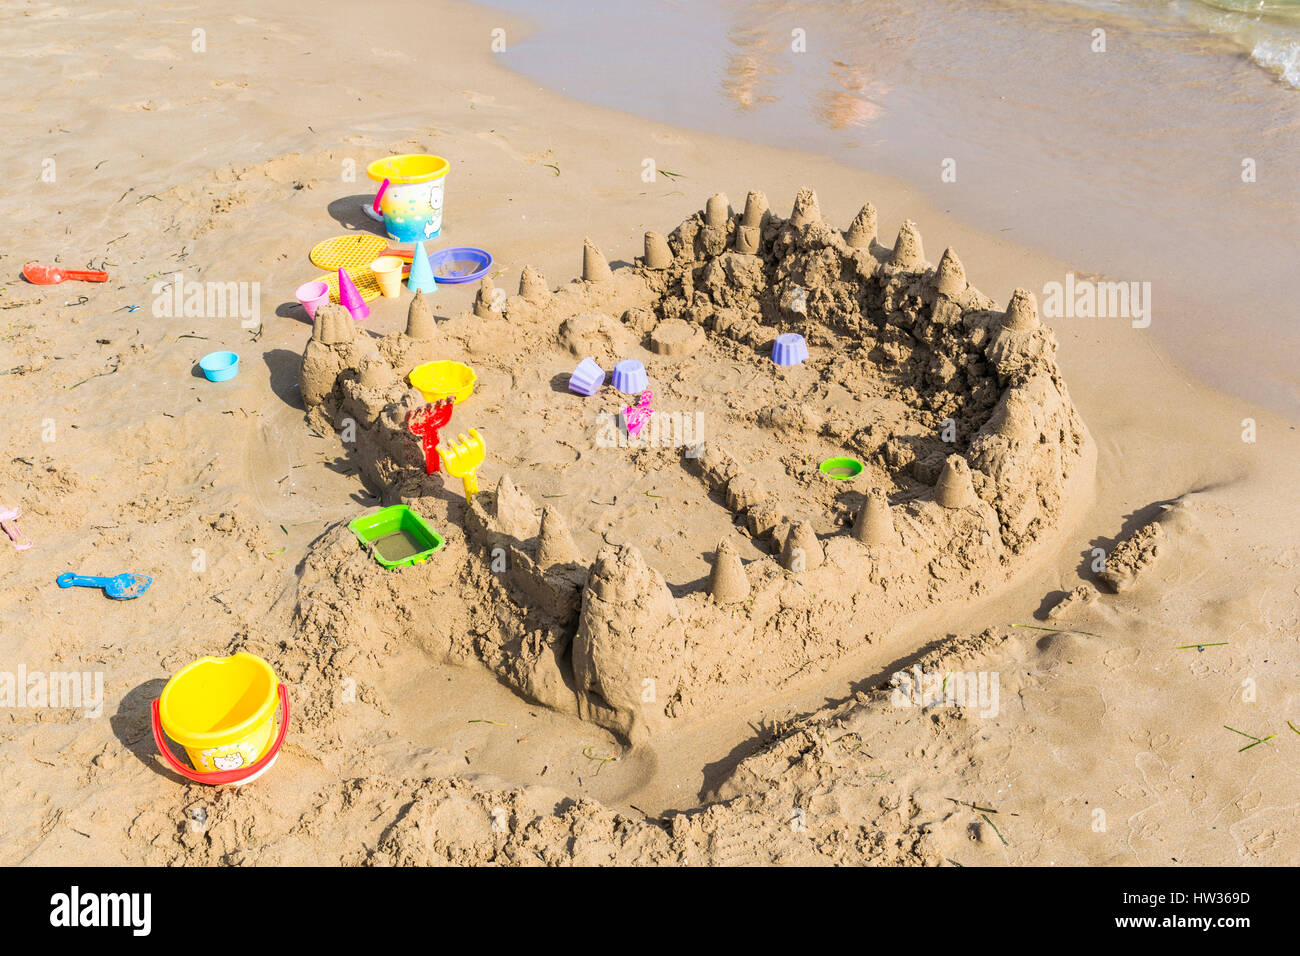 A sand castle with a lot of plastic beach toys with no children in the picture. Stock Photo